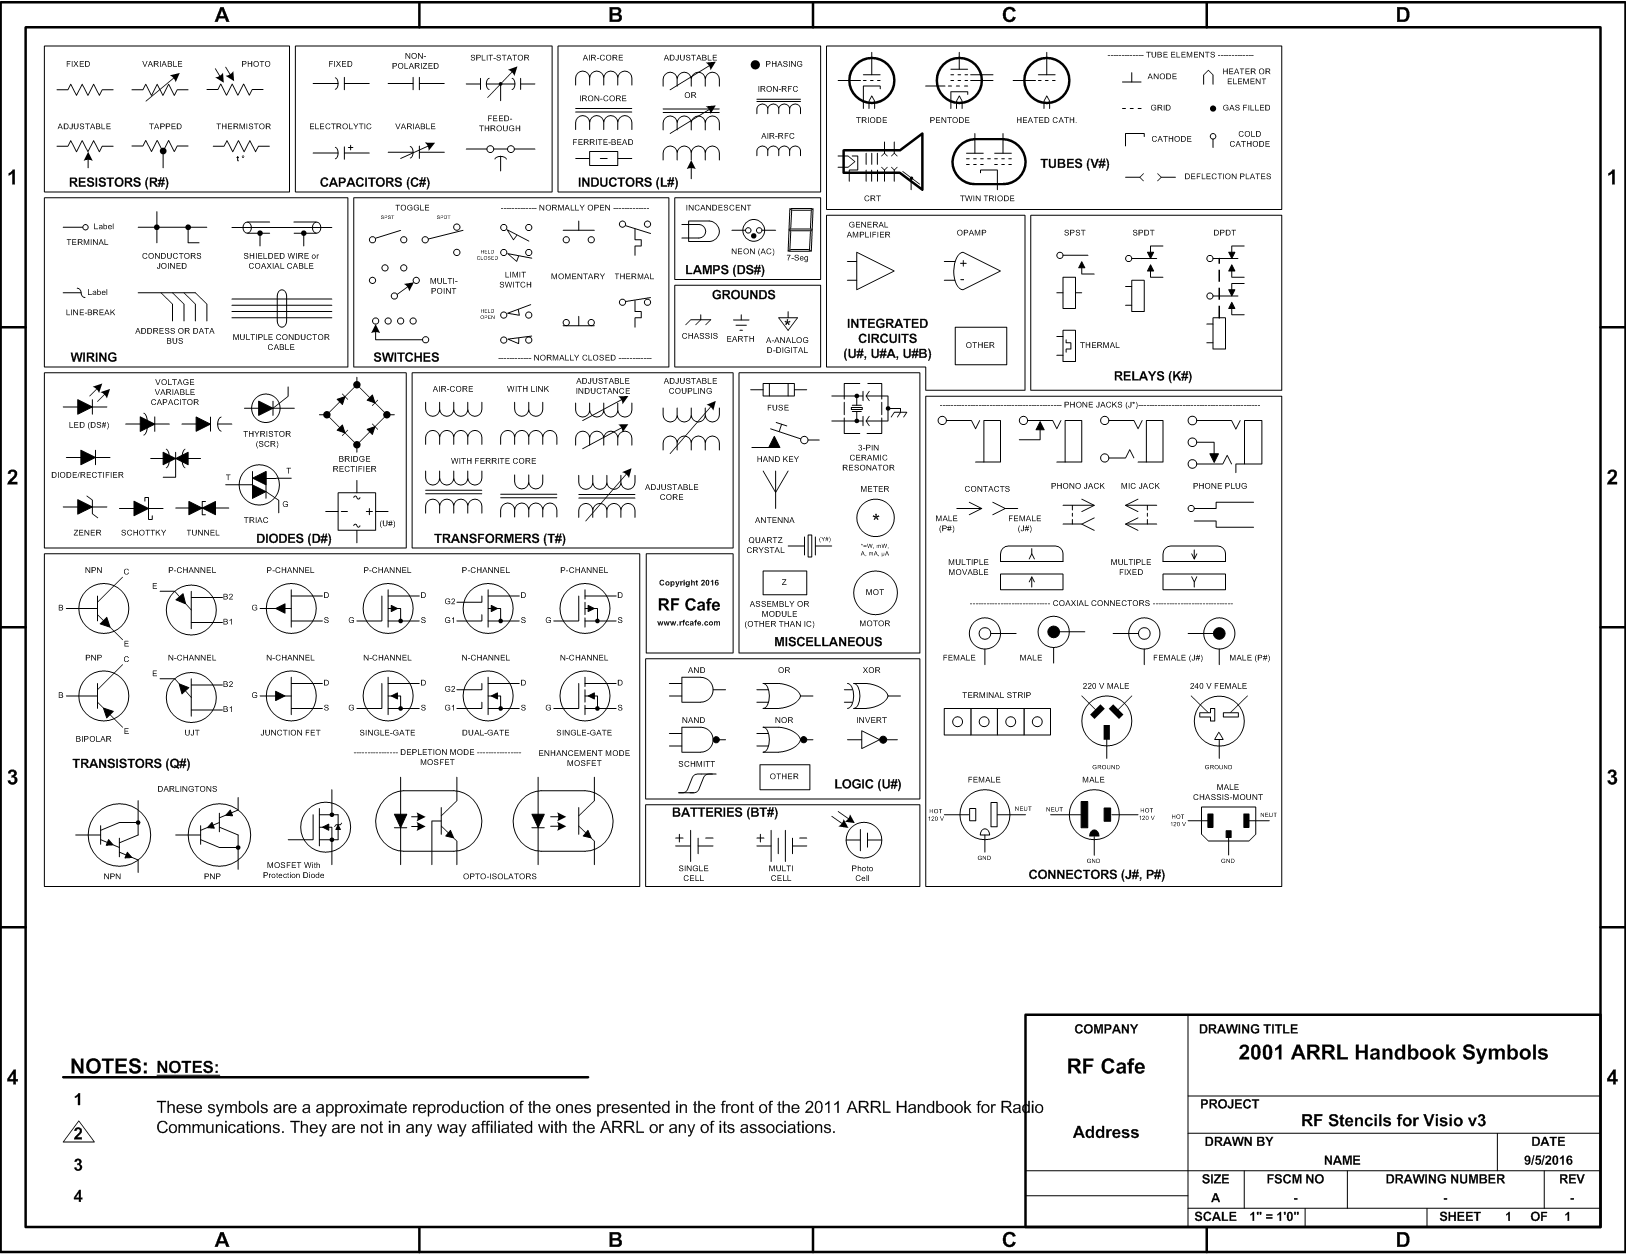 hvac drawing shapes for powerpoint